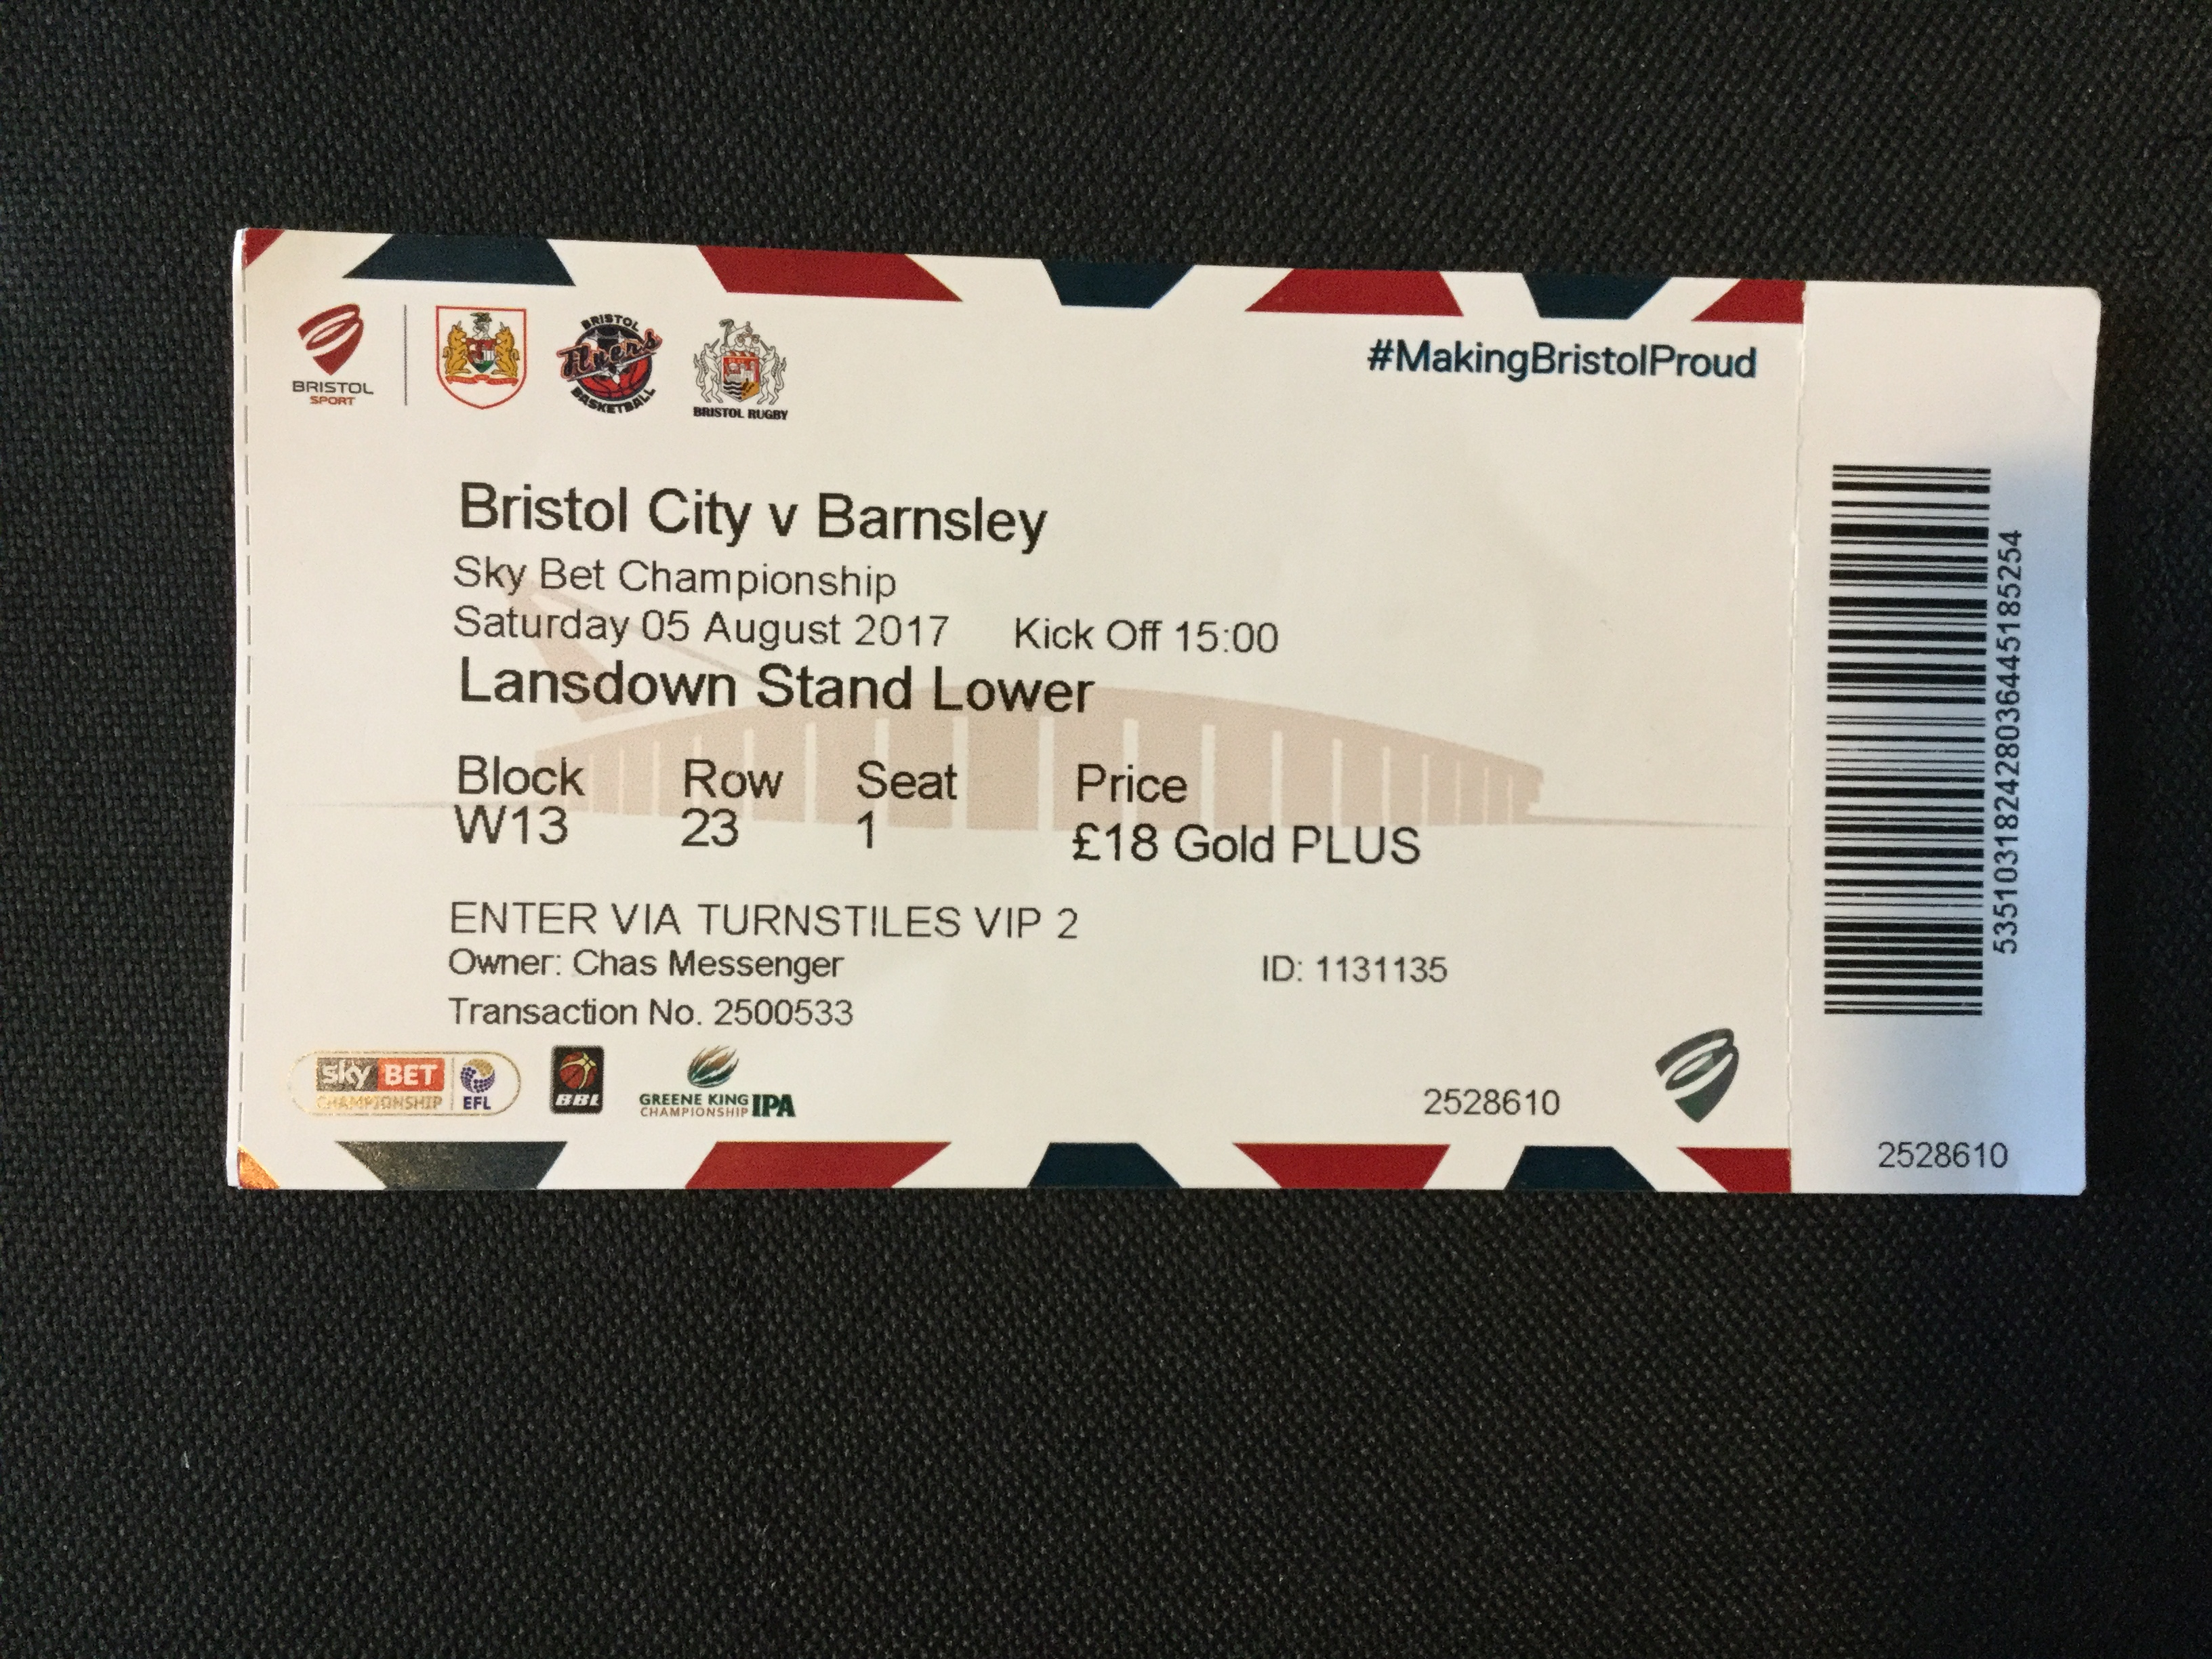 Bristol City v Barnsley 05-08-17 Ticket